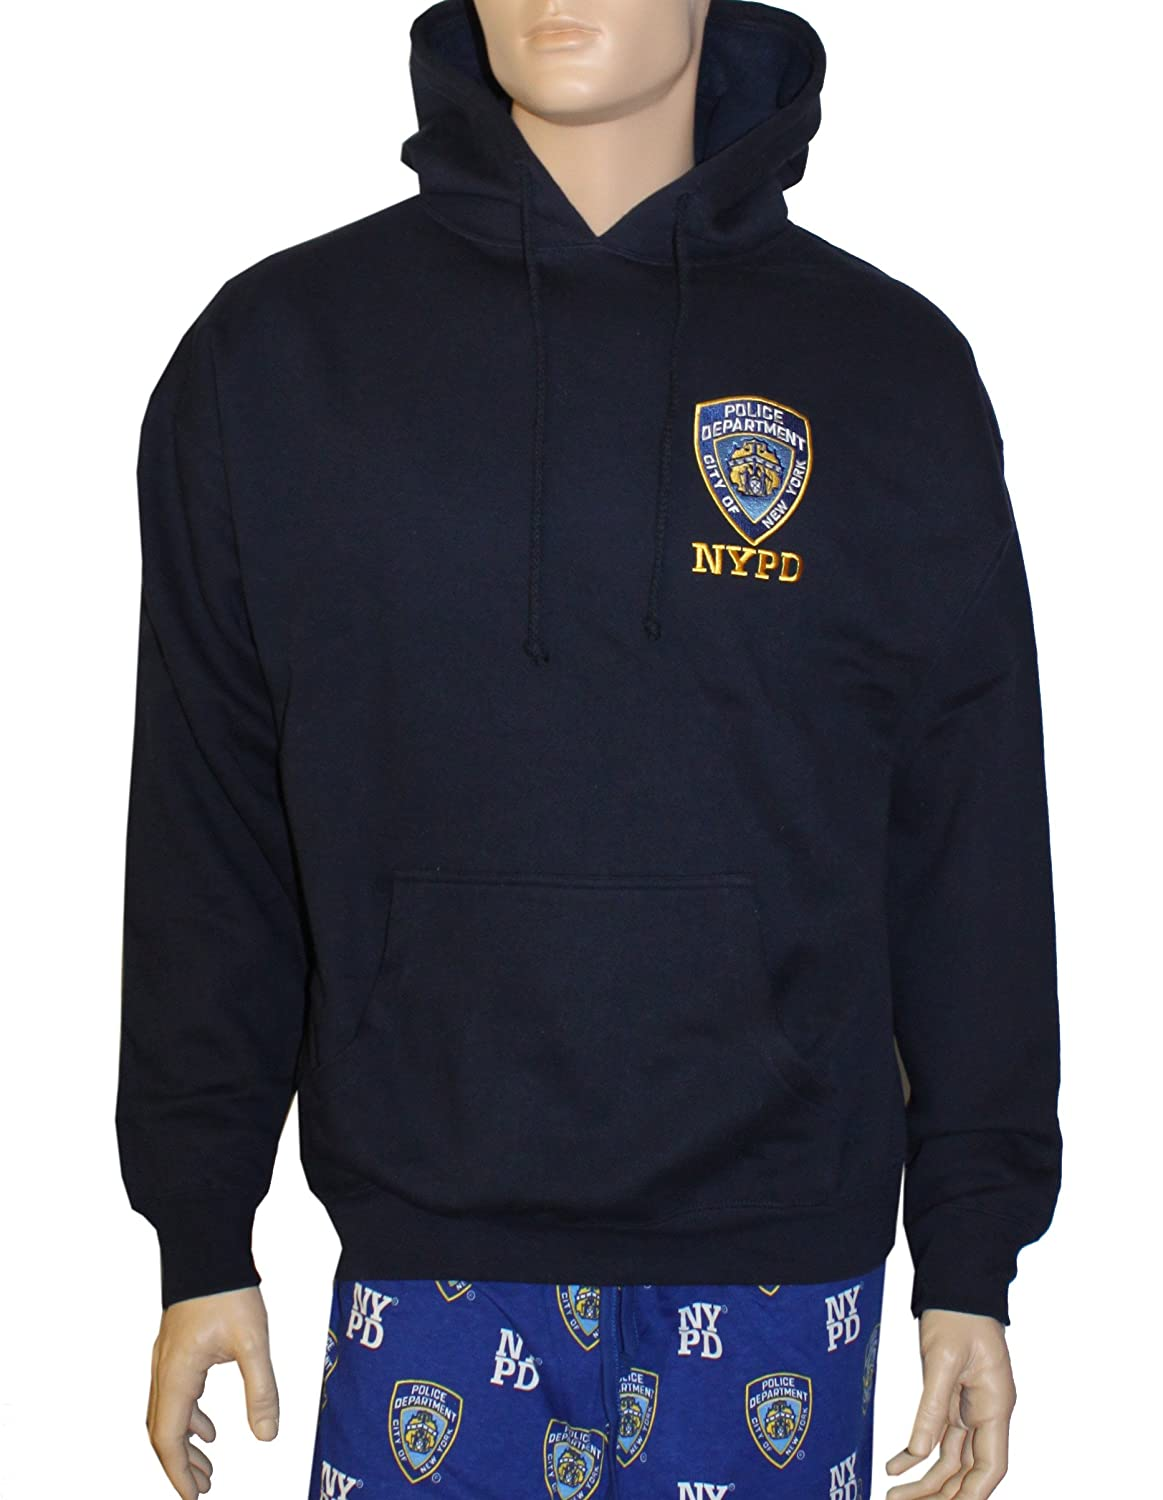 959b0c857 Amazon.com: NYC FACTORY NYPD Embroidered Logo Hoodie Sweatshirt Navy Blue:  Clothing